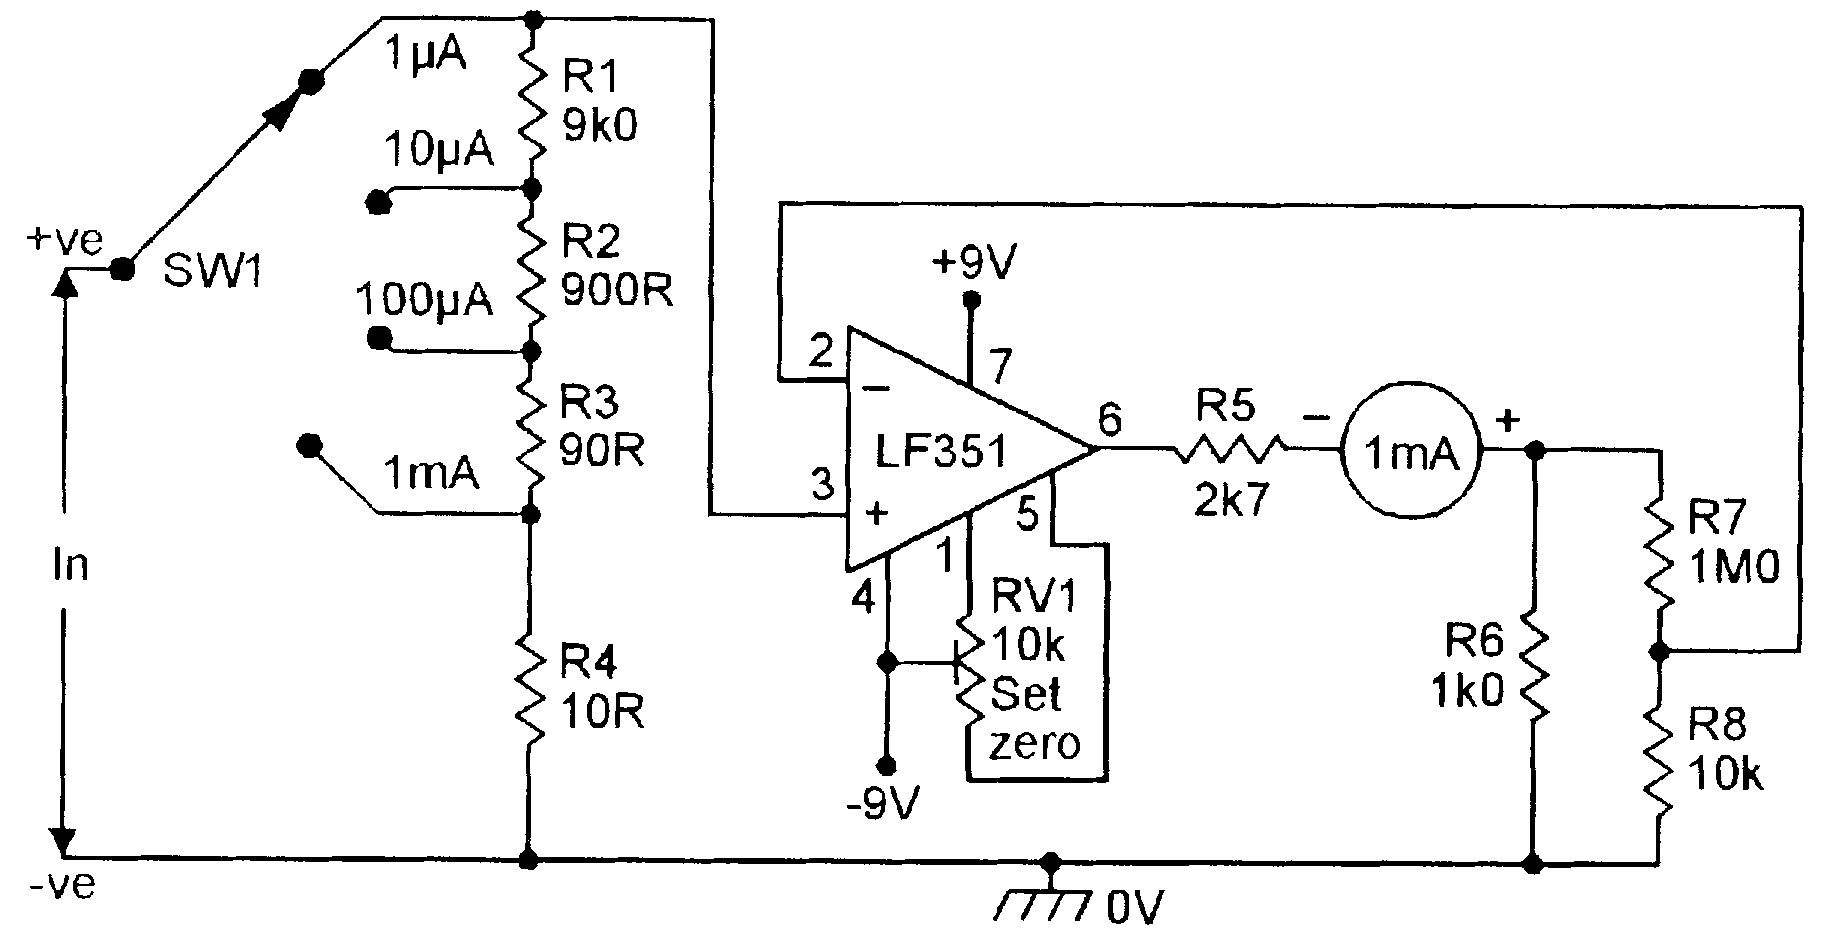 Op Amp Cookbook Part 4 Nuts Volts Magazine For The Sensor Circuits Archives Page 2 Of Gadgetronicx Electronics Hobbyist